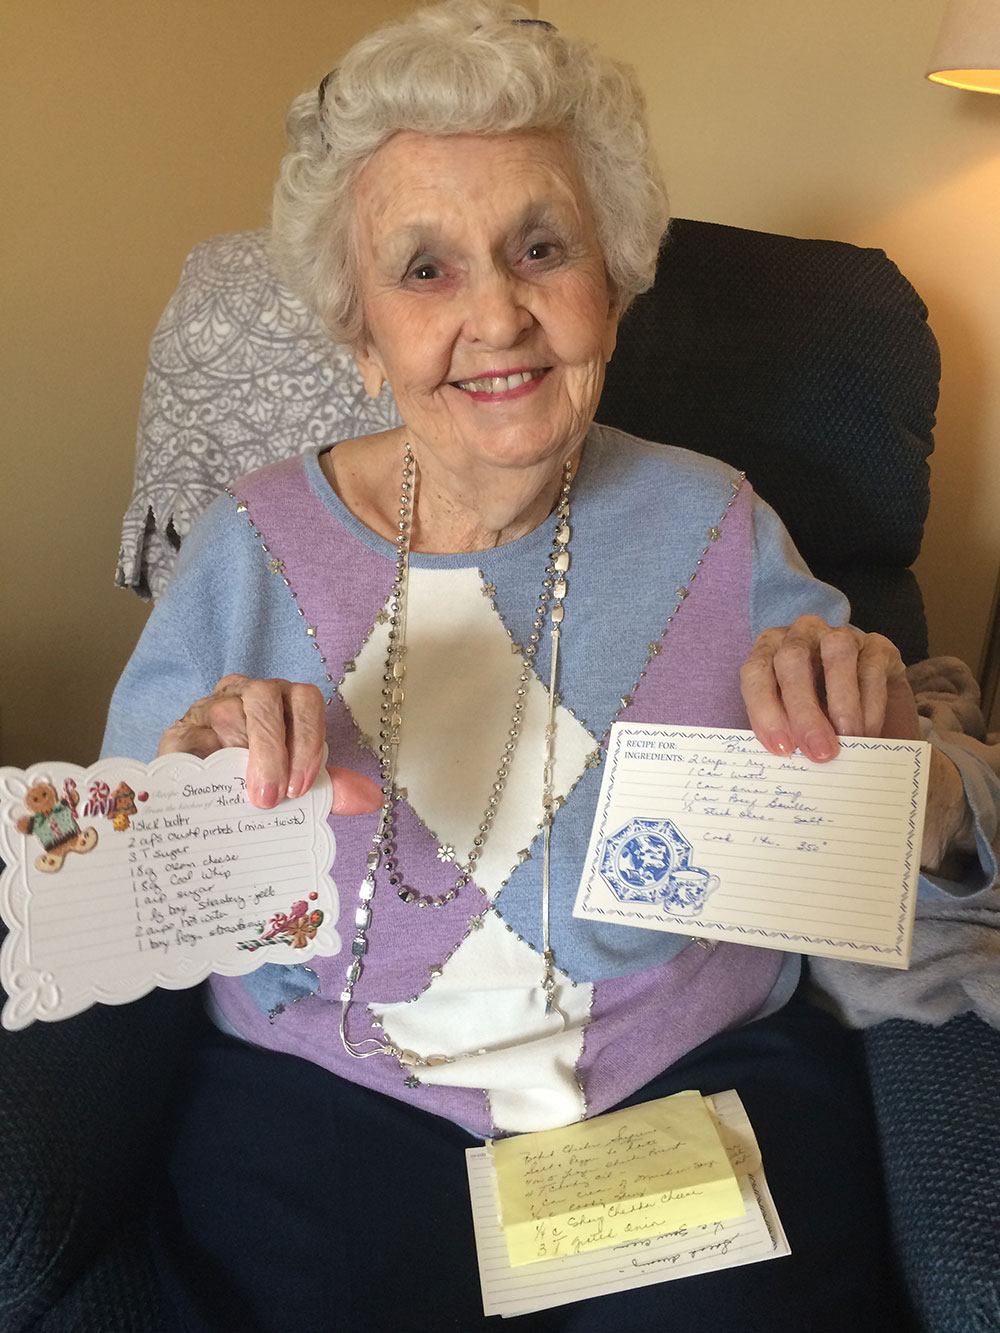 Memory care resident showing recipe for yellow rice and corn casserole at Angels for the Elderly in Montgomery, AL